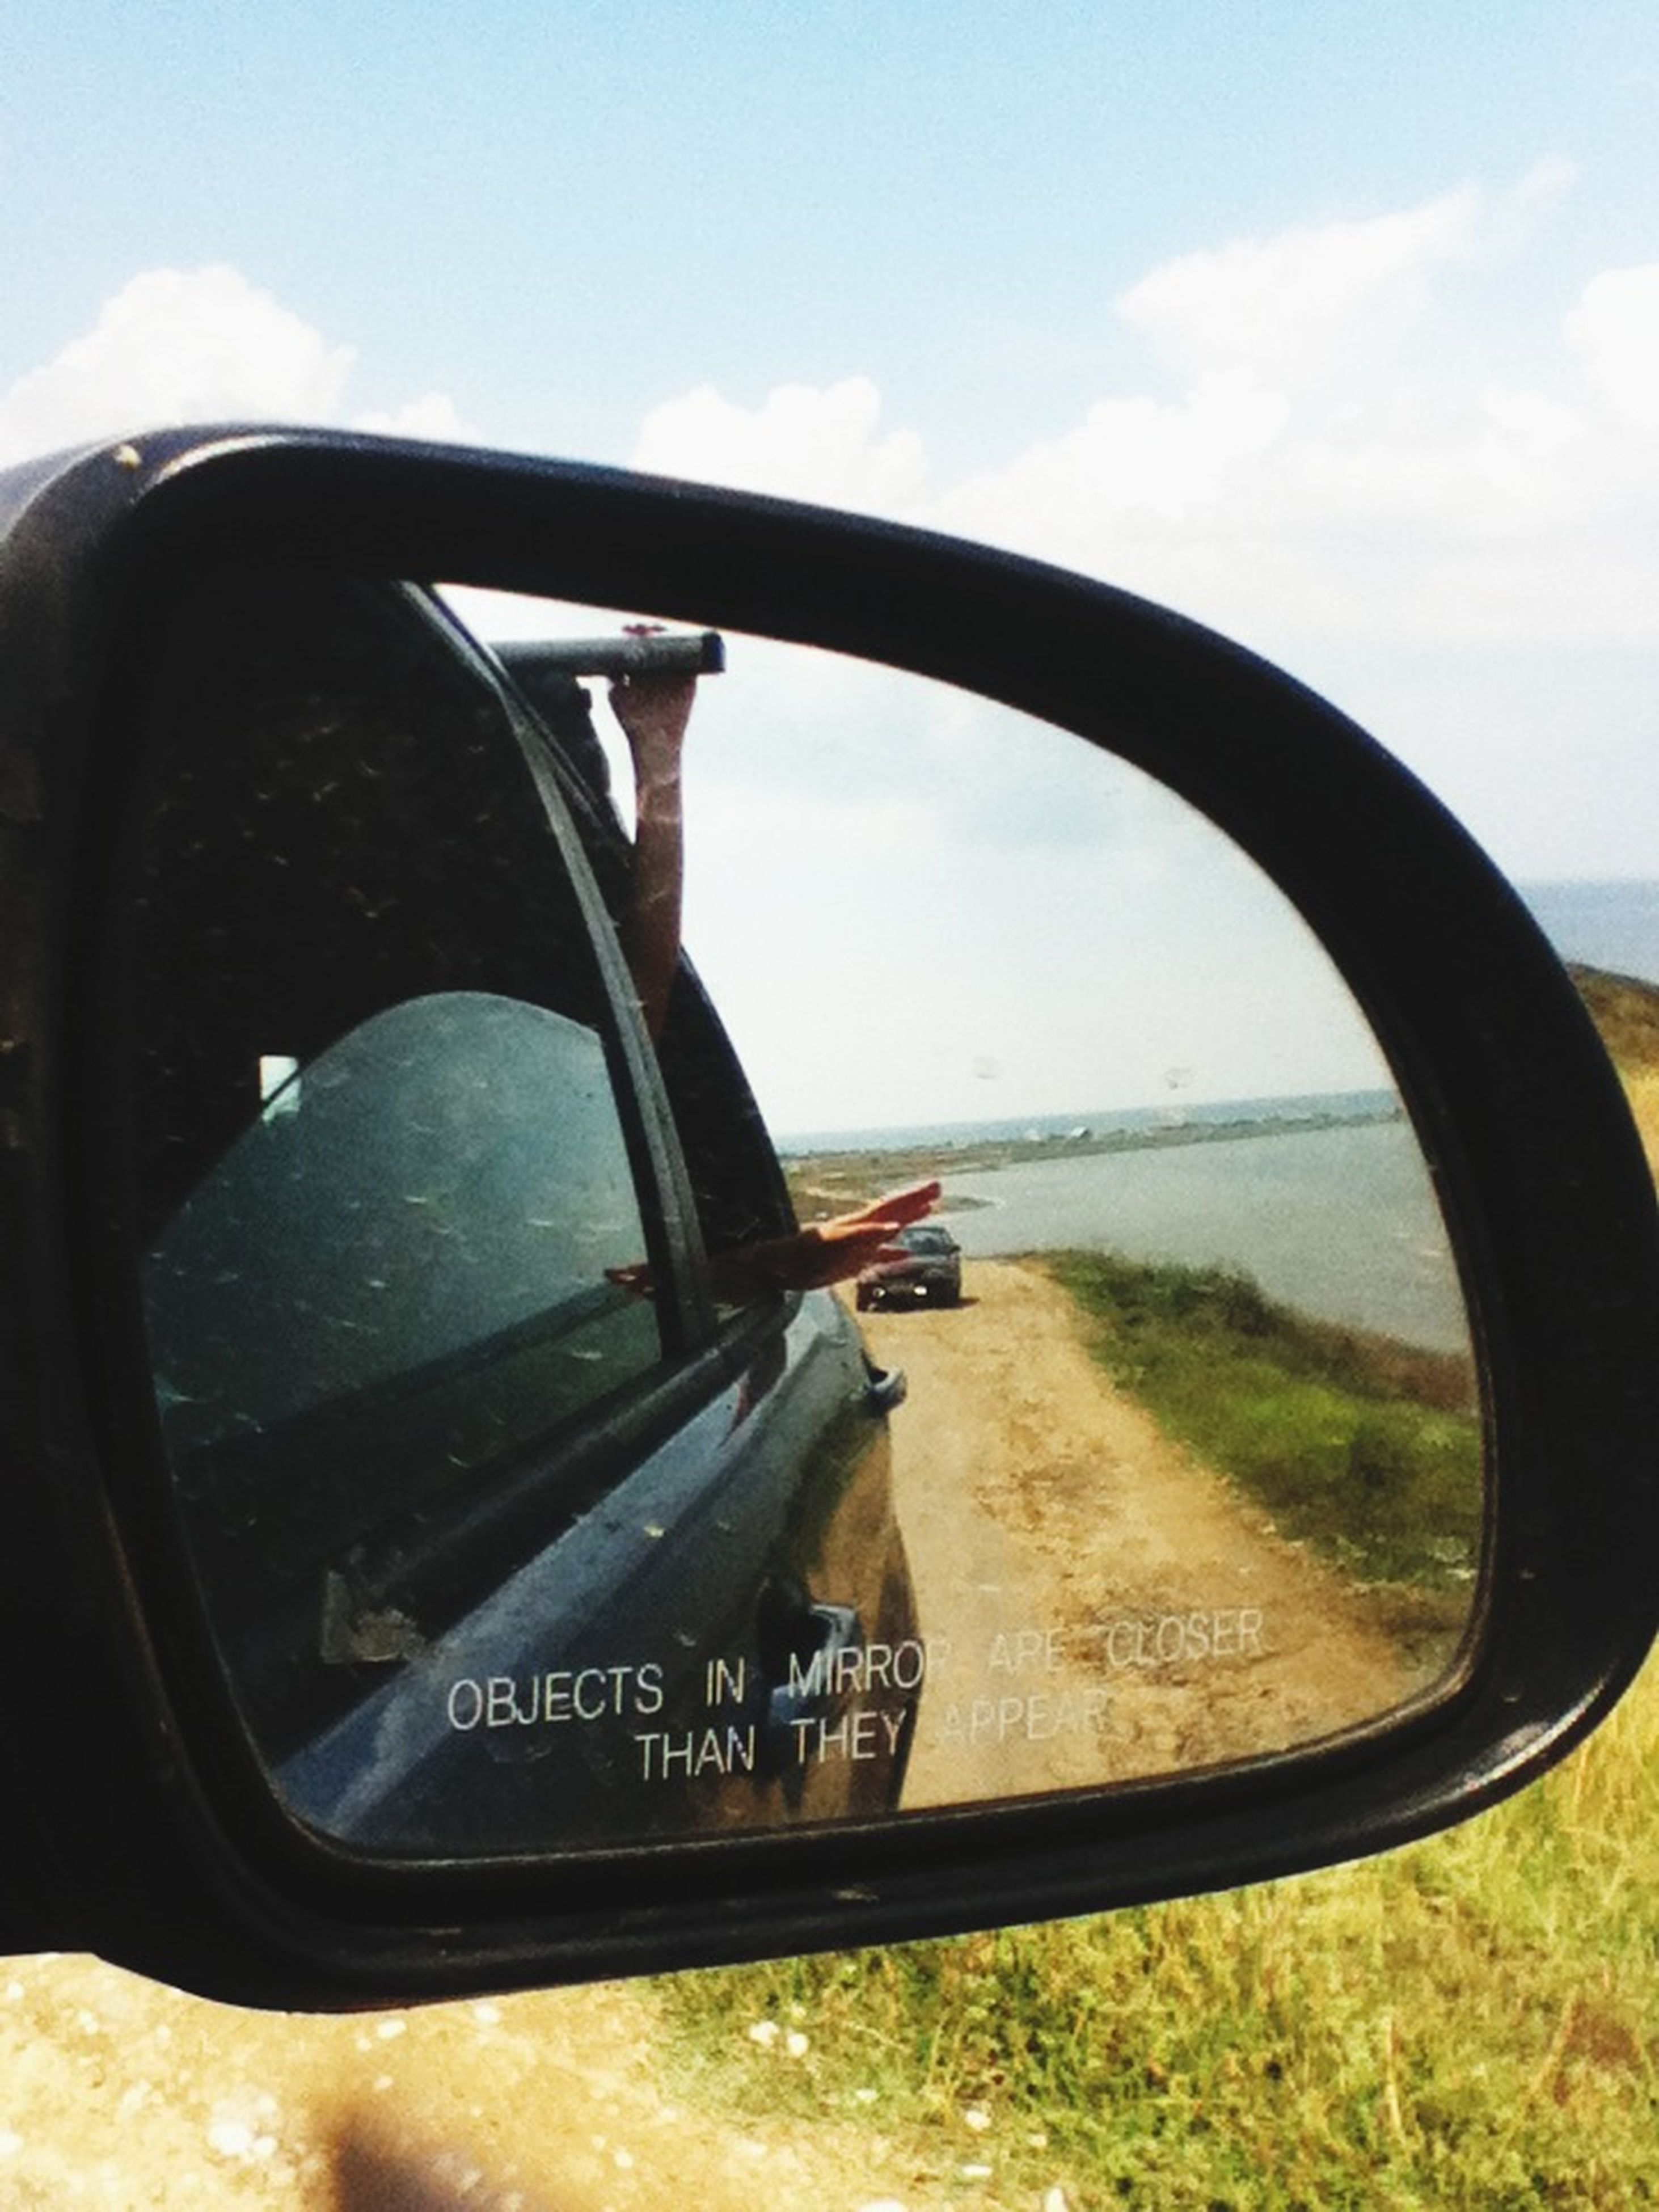 transportation, mode of transport, land vehicle, car, side-view mirror, vehicle interior, sky, car interior, glass - material, part of, road, reflection, cropped, travel, close-up, transparent, windshield, cloud - sky, vehicle part, cloud